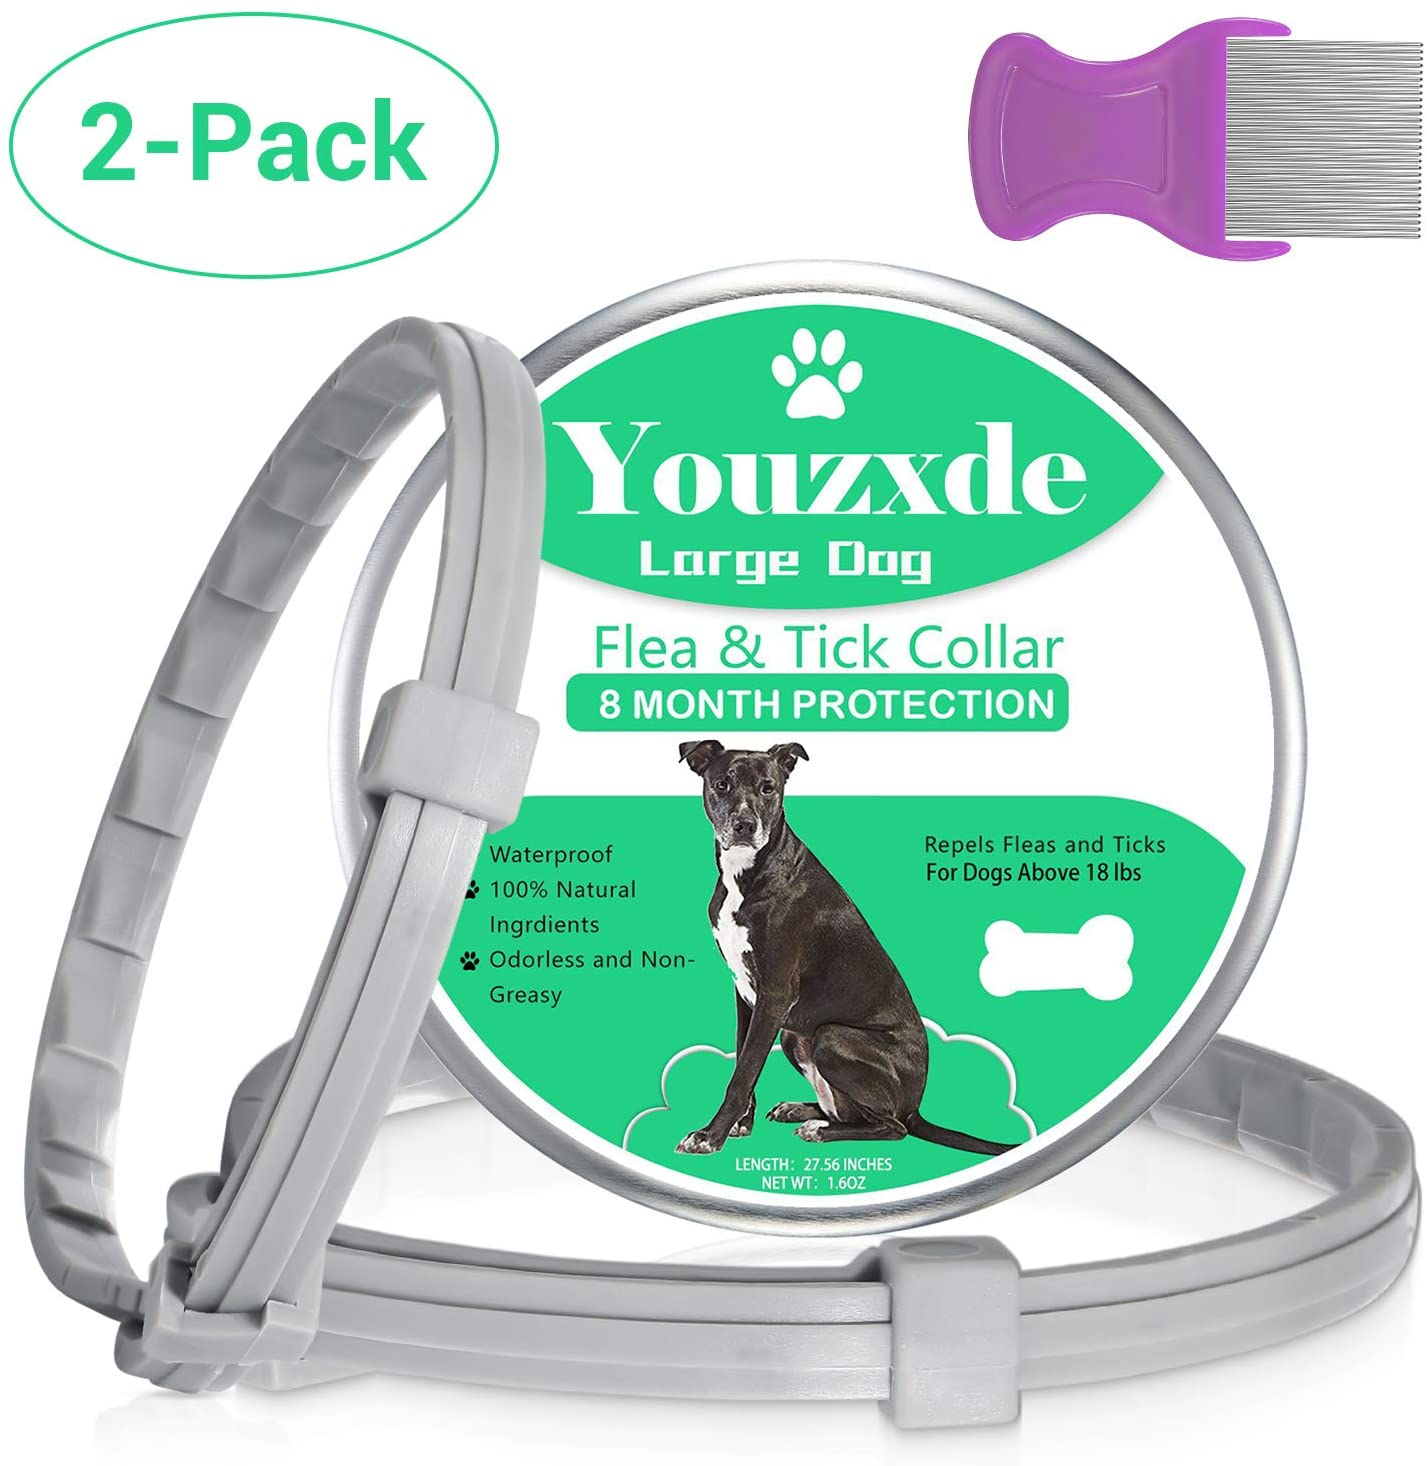 Youzxde Flea and Tick Collar for Large Dogs with Flea Comb,8-Month Tick and Flea Control for Dogs Above 18 Lbs,Safe & Allergy Free, Waterproof, Adjustable,2 Pack